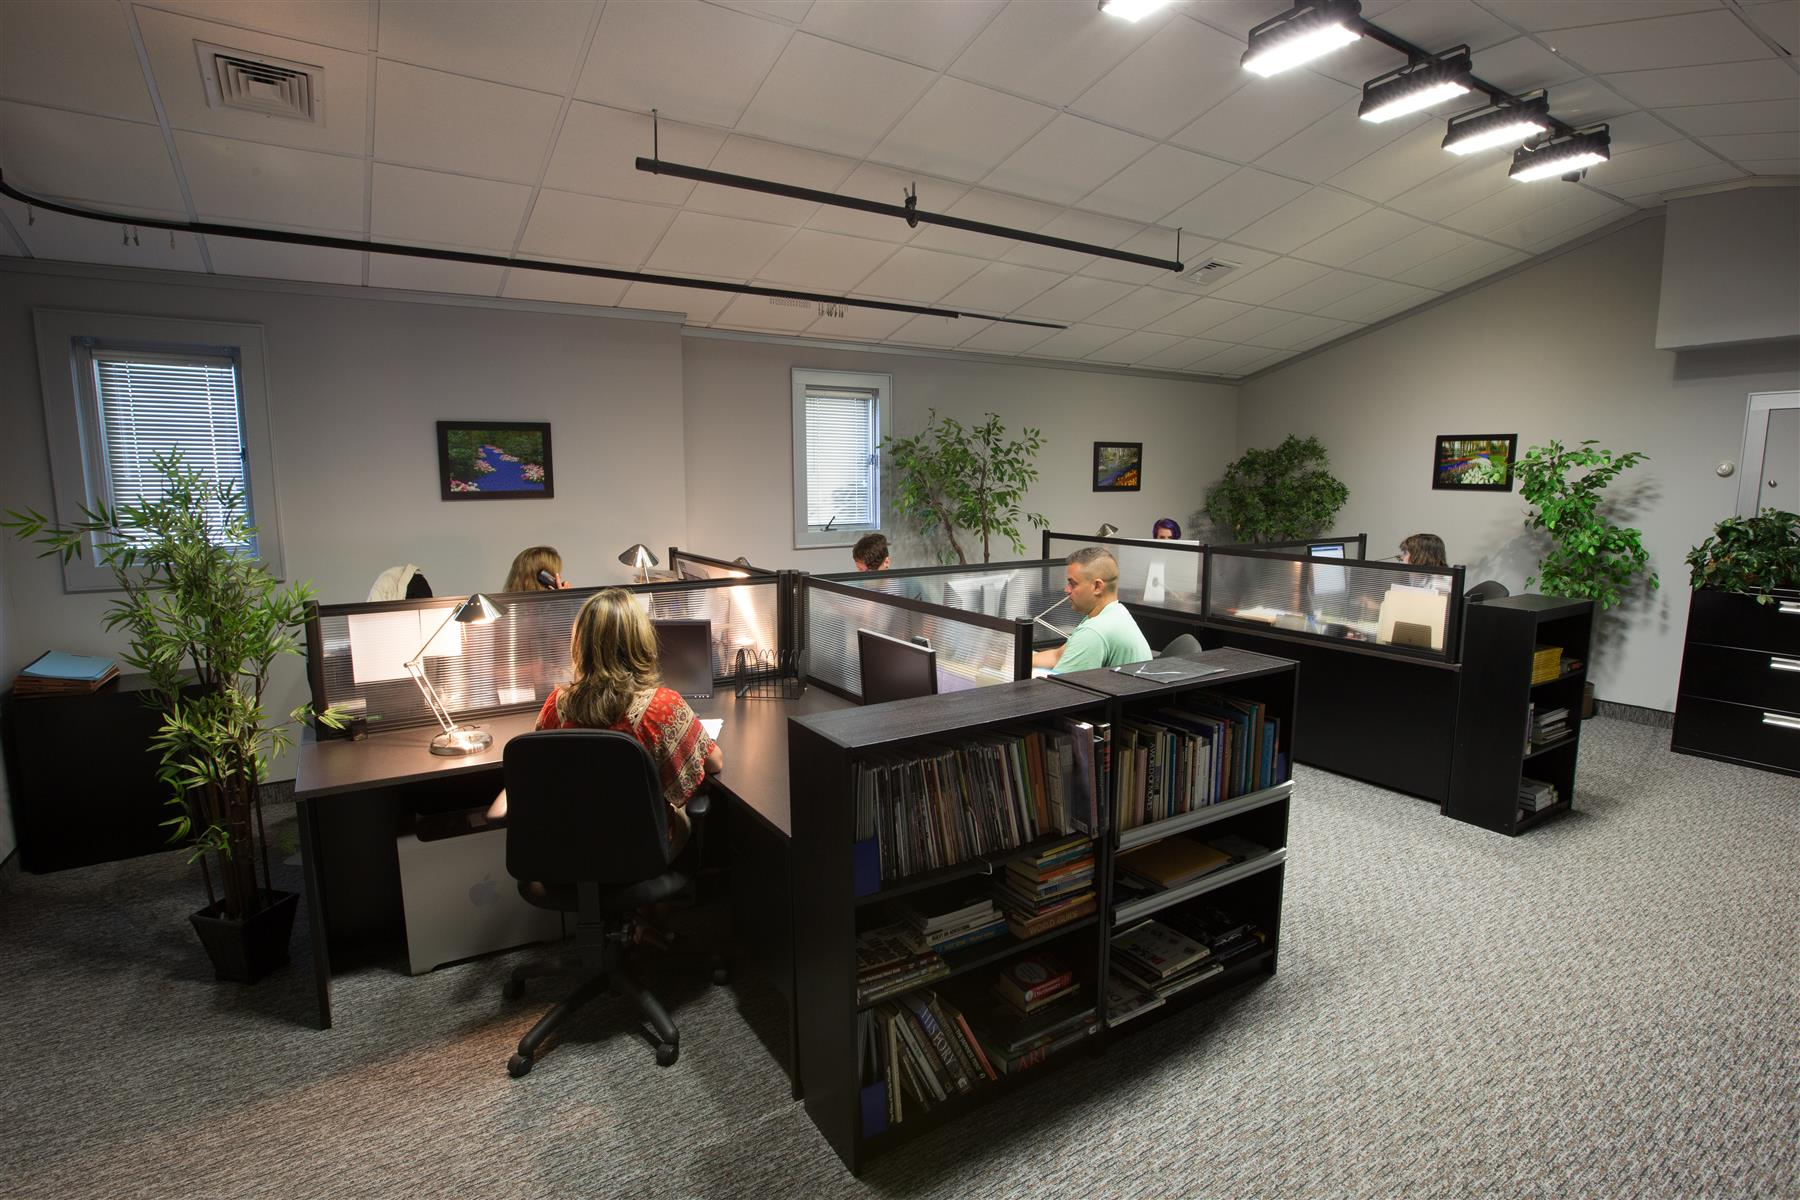 Instant Office - East Northport, NY - Standard Seating